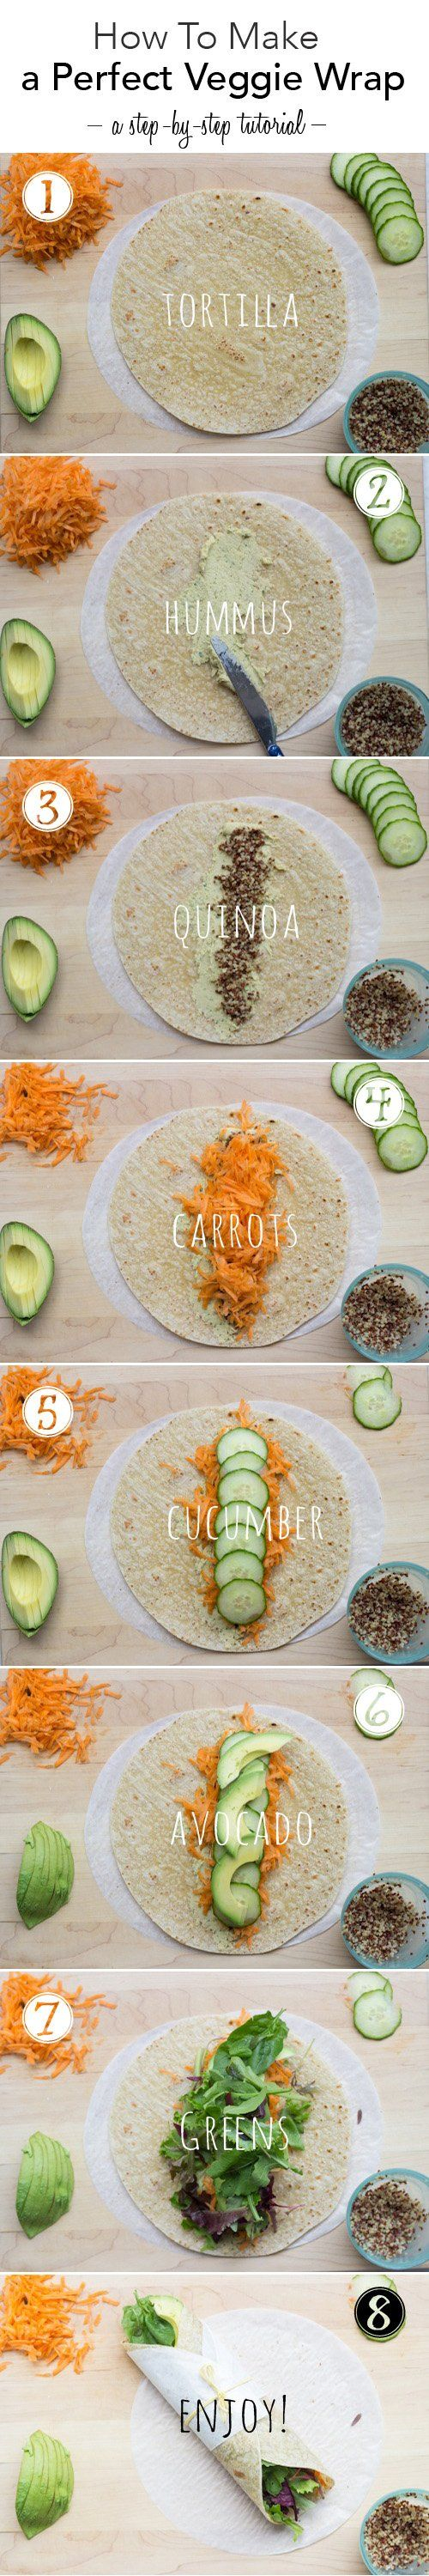 A step-by-step tutorial showing you how to create the perfect #vegan veggie wrap. By adding quinoa to the mix, this veggie protein turns into a full blown meal.